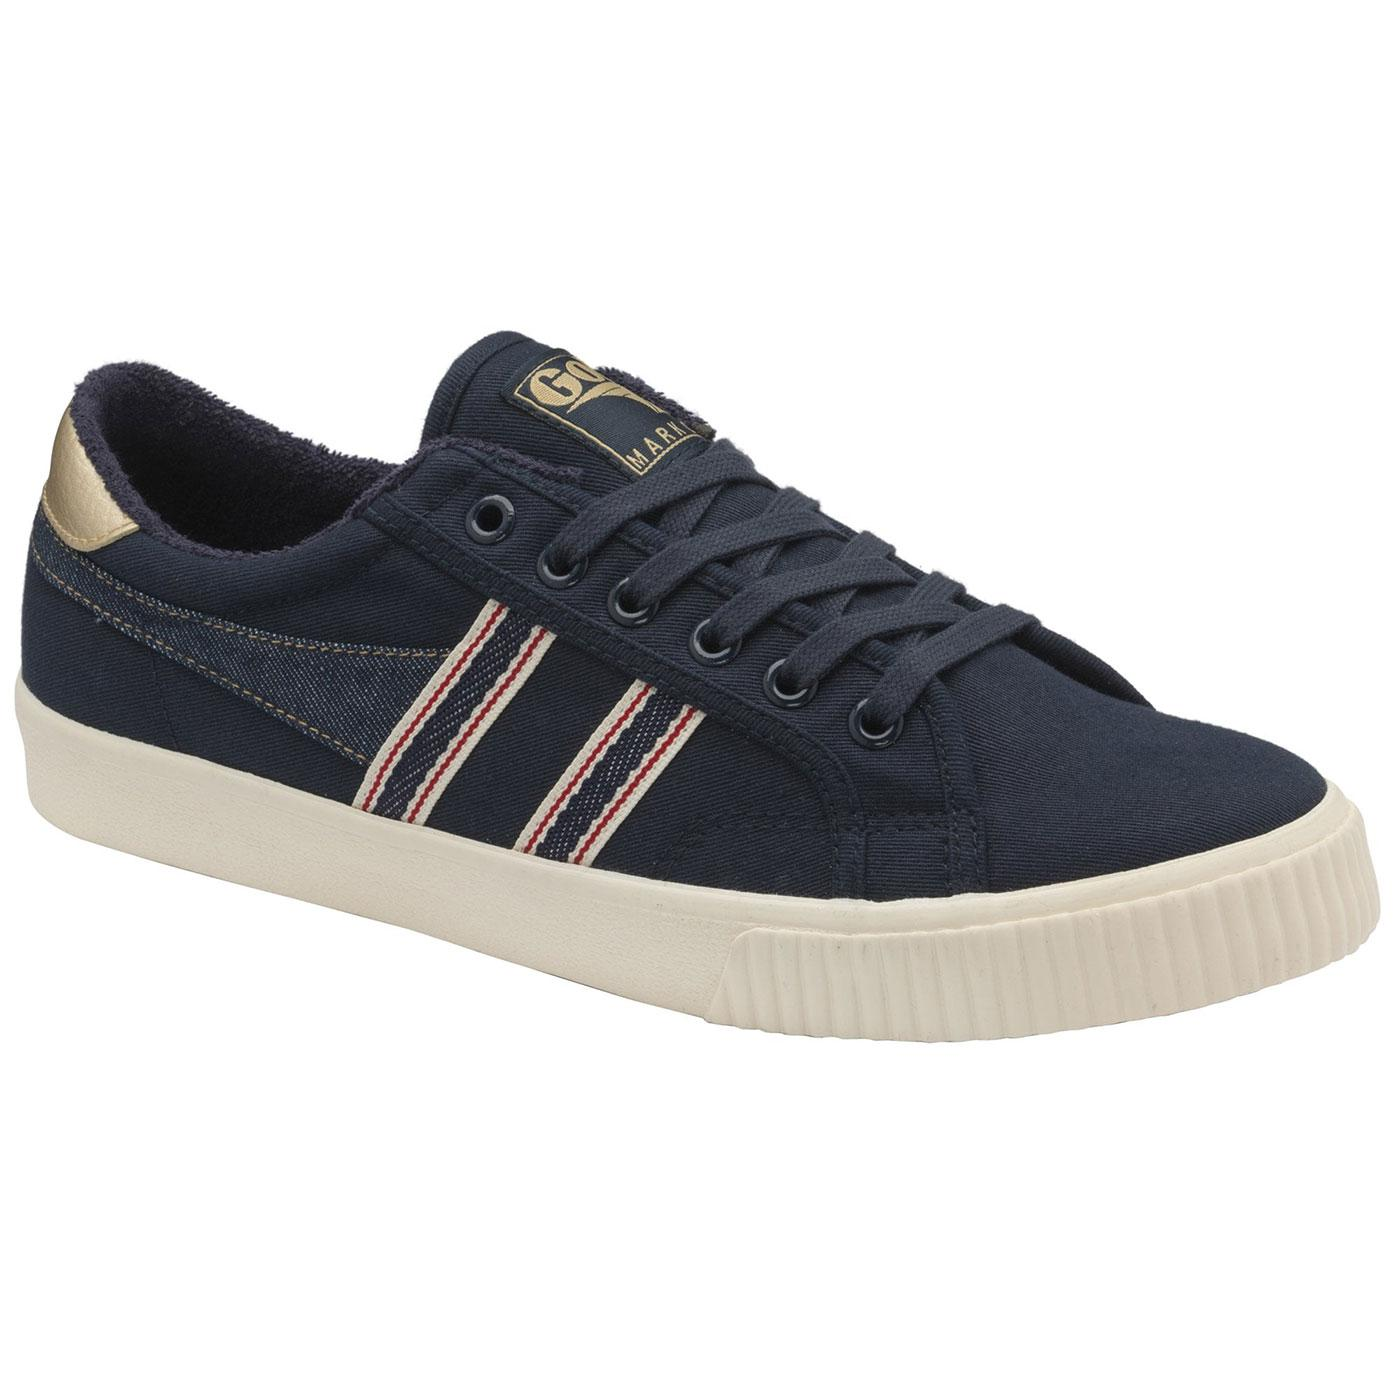 GOLA Tennis Mark Cox Selvedge Trainers NAVY/INDIGO